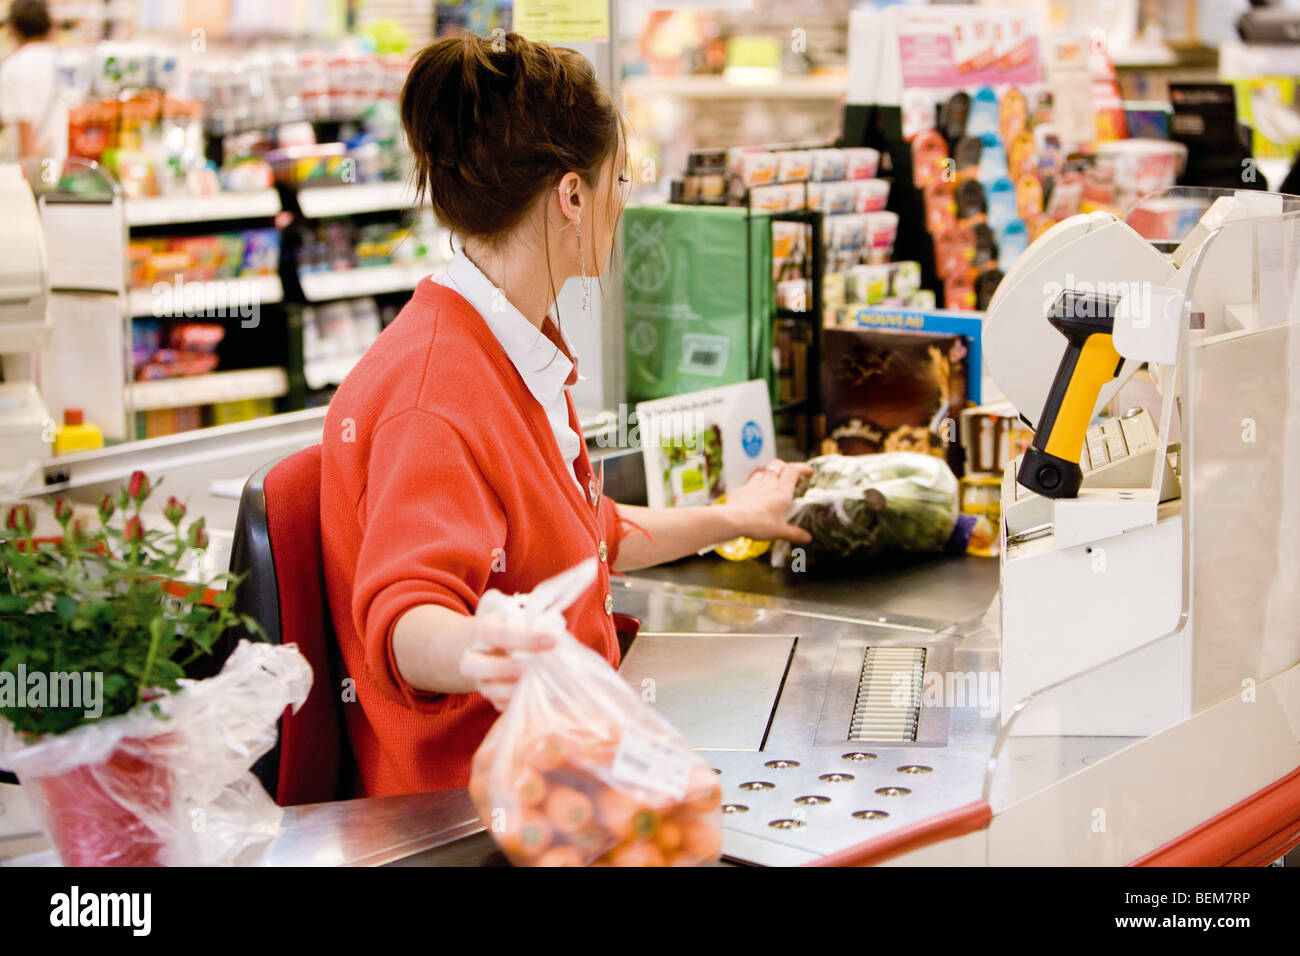 Cashier totaling grocery purchases - Stock Image